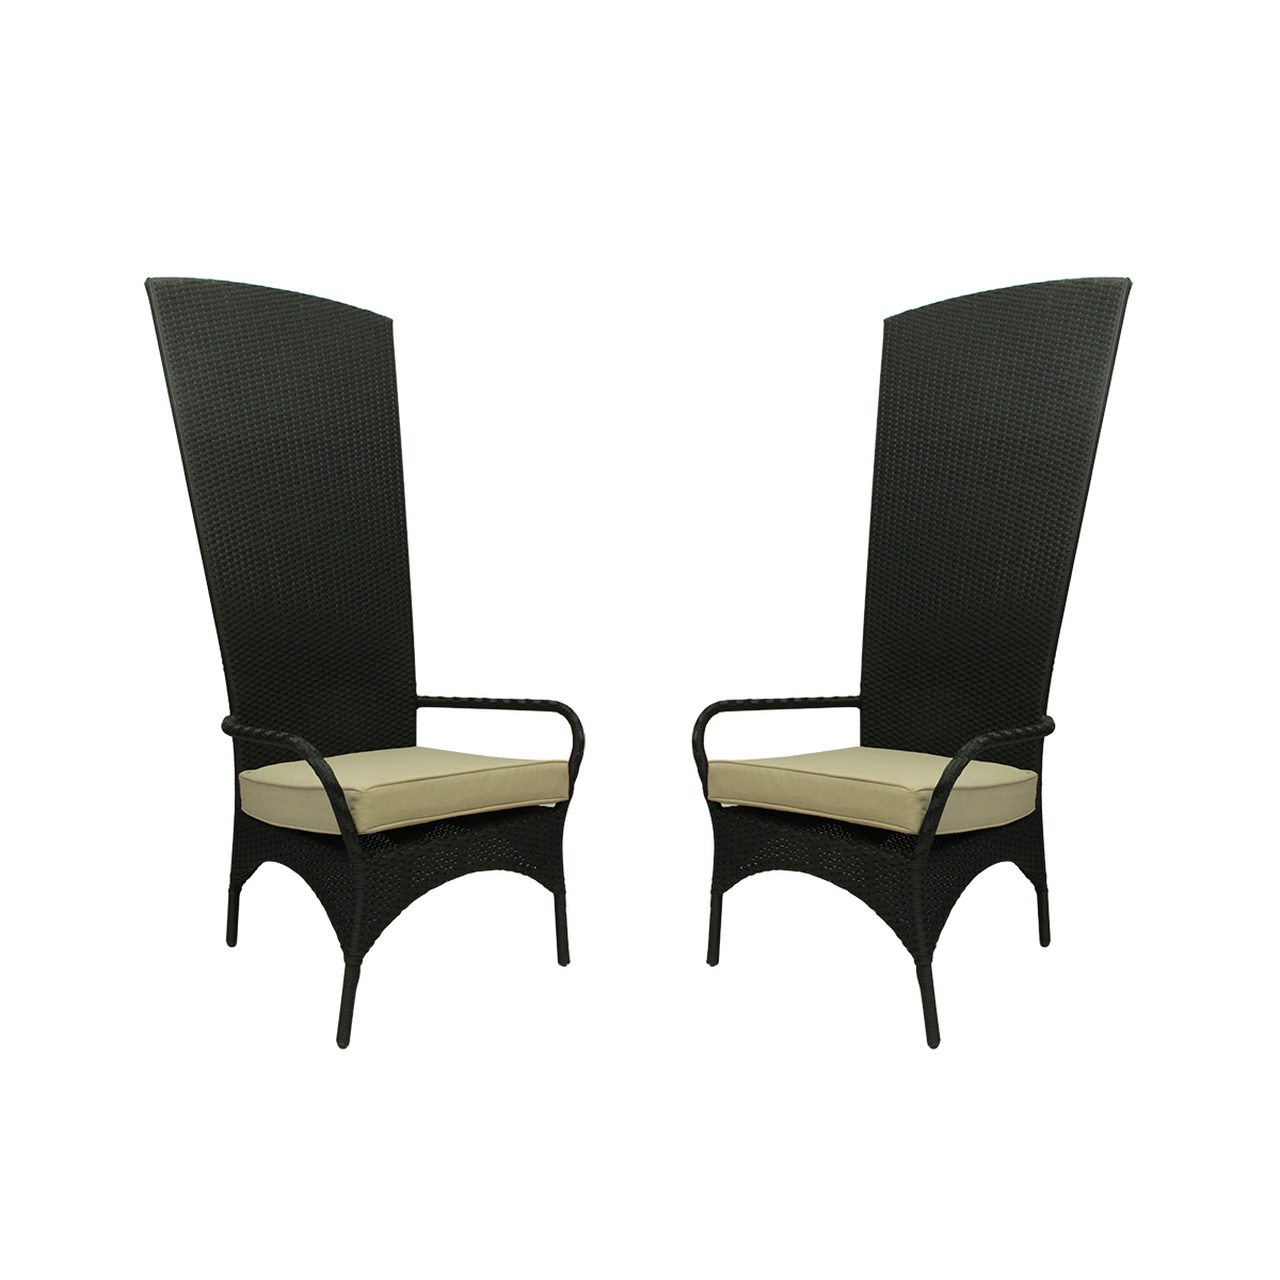 Set Of 2 Black Resin Wicker Outdoor Patio King Chairs With Beige Cushions Christmas Central